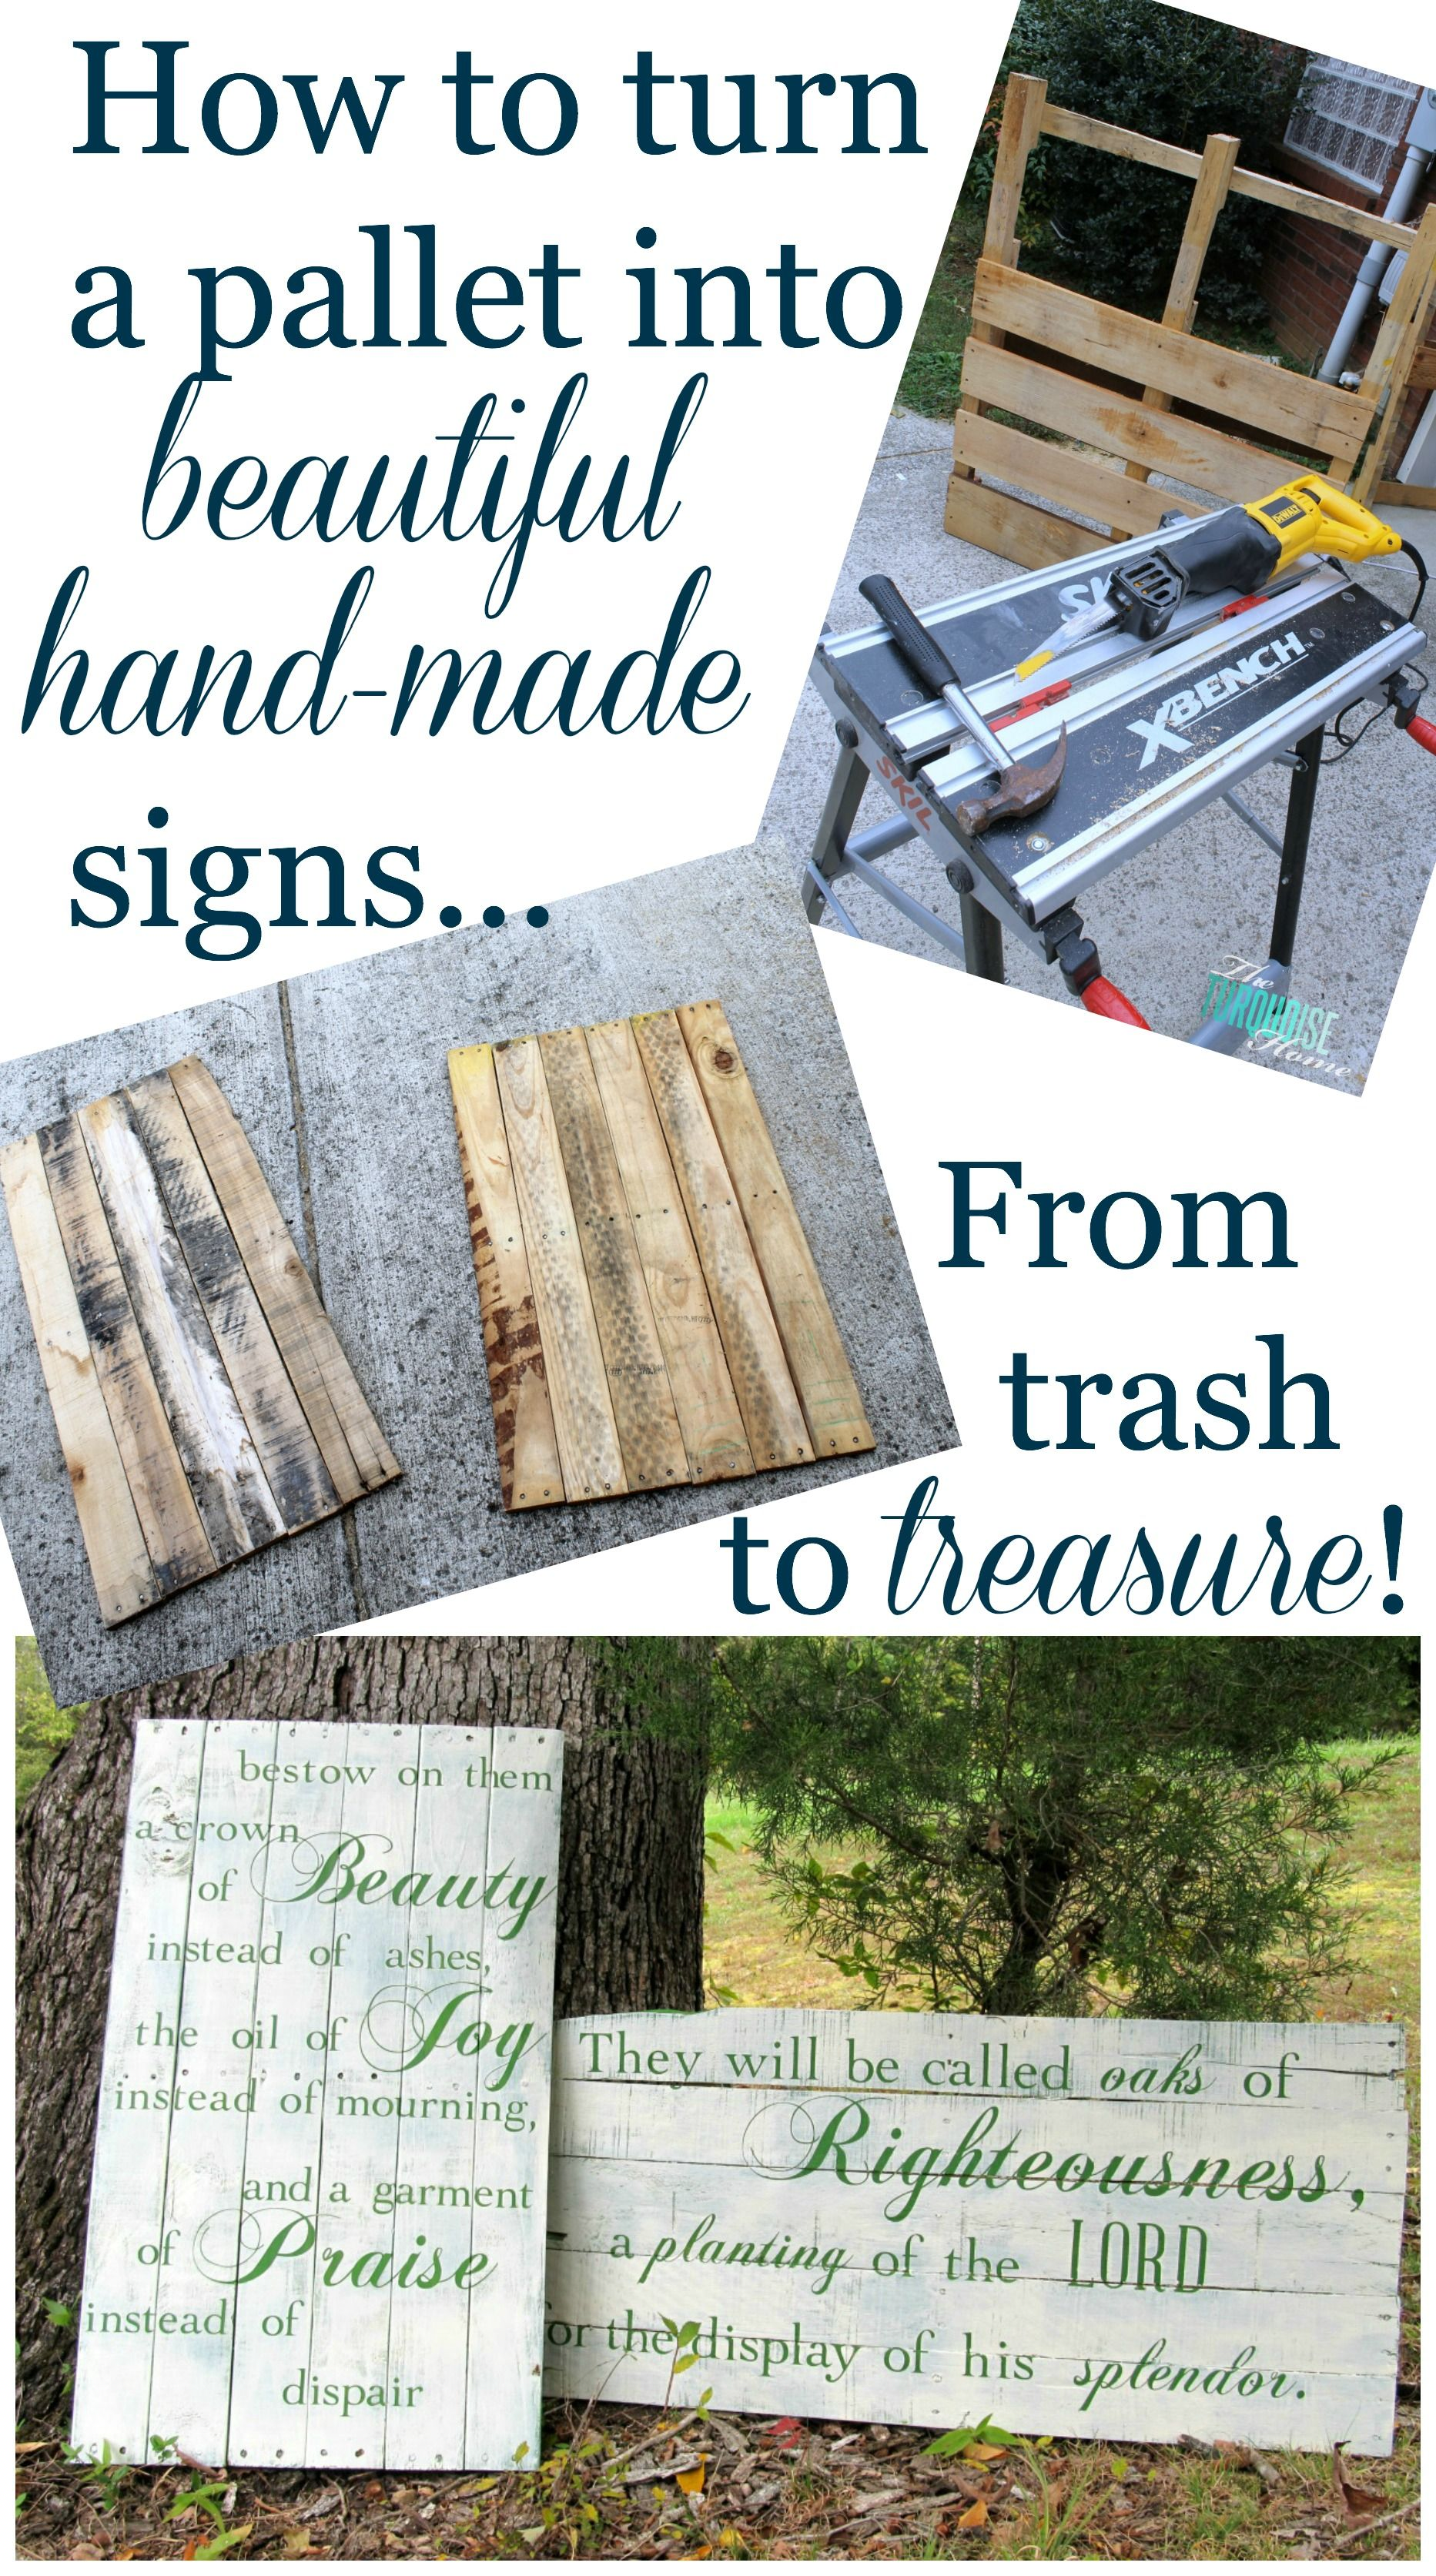 Pallets Knutselen How To Make Beautiful Hand Painted Signs From Pallets Knutselen